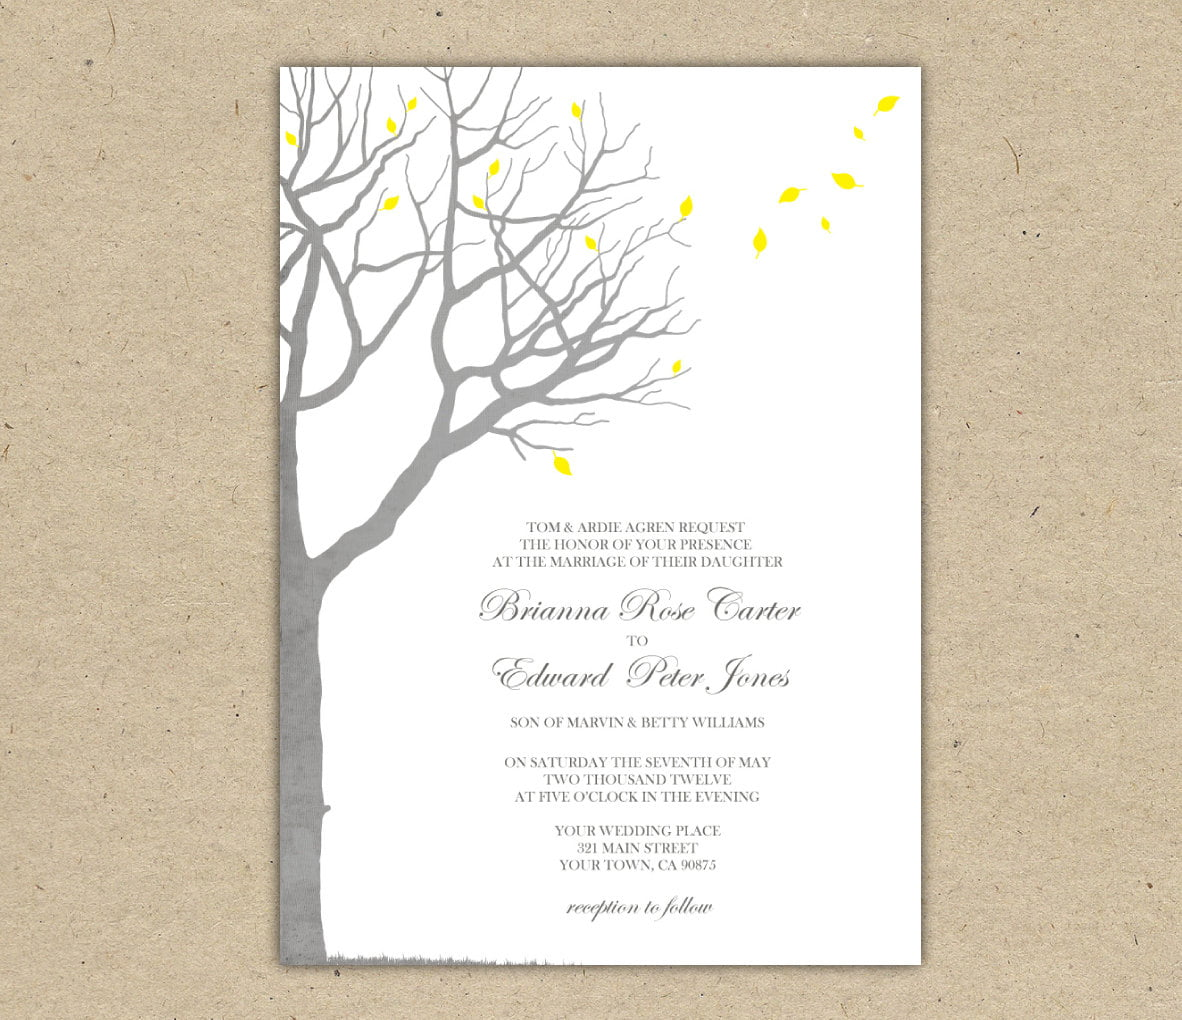 Confirmation Invitations Templates Example Letter Of Confirmation